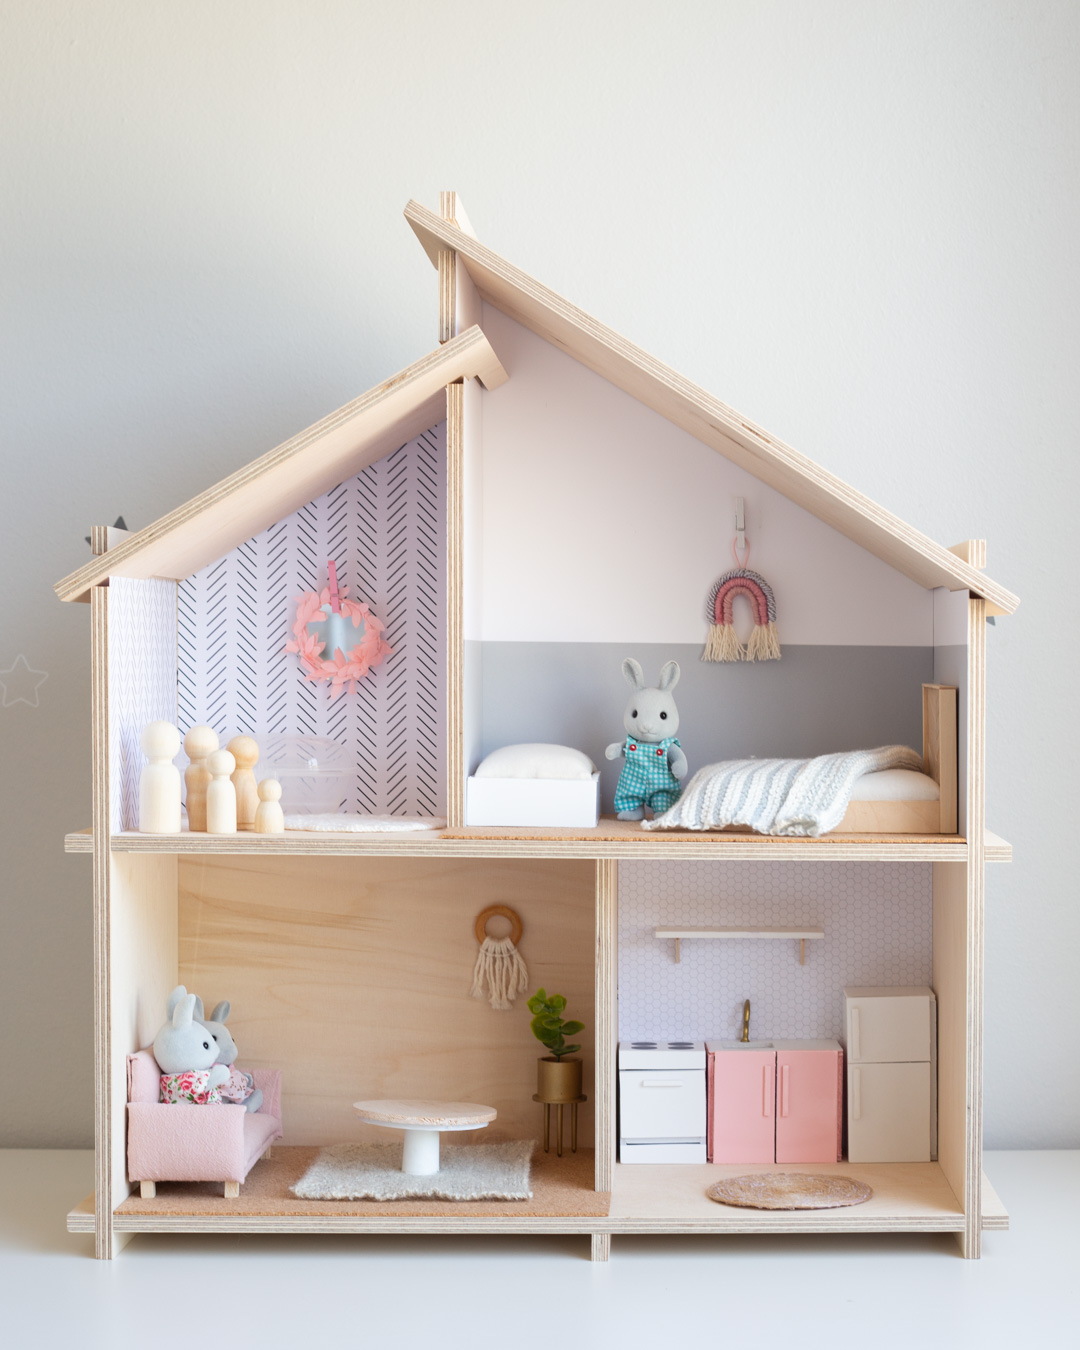 DIY Dollhouse bed and furniture made from popsicle sticks 1-12 scale